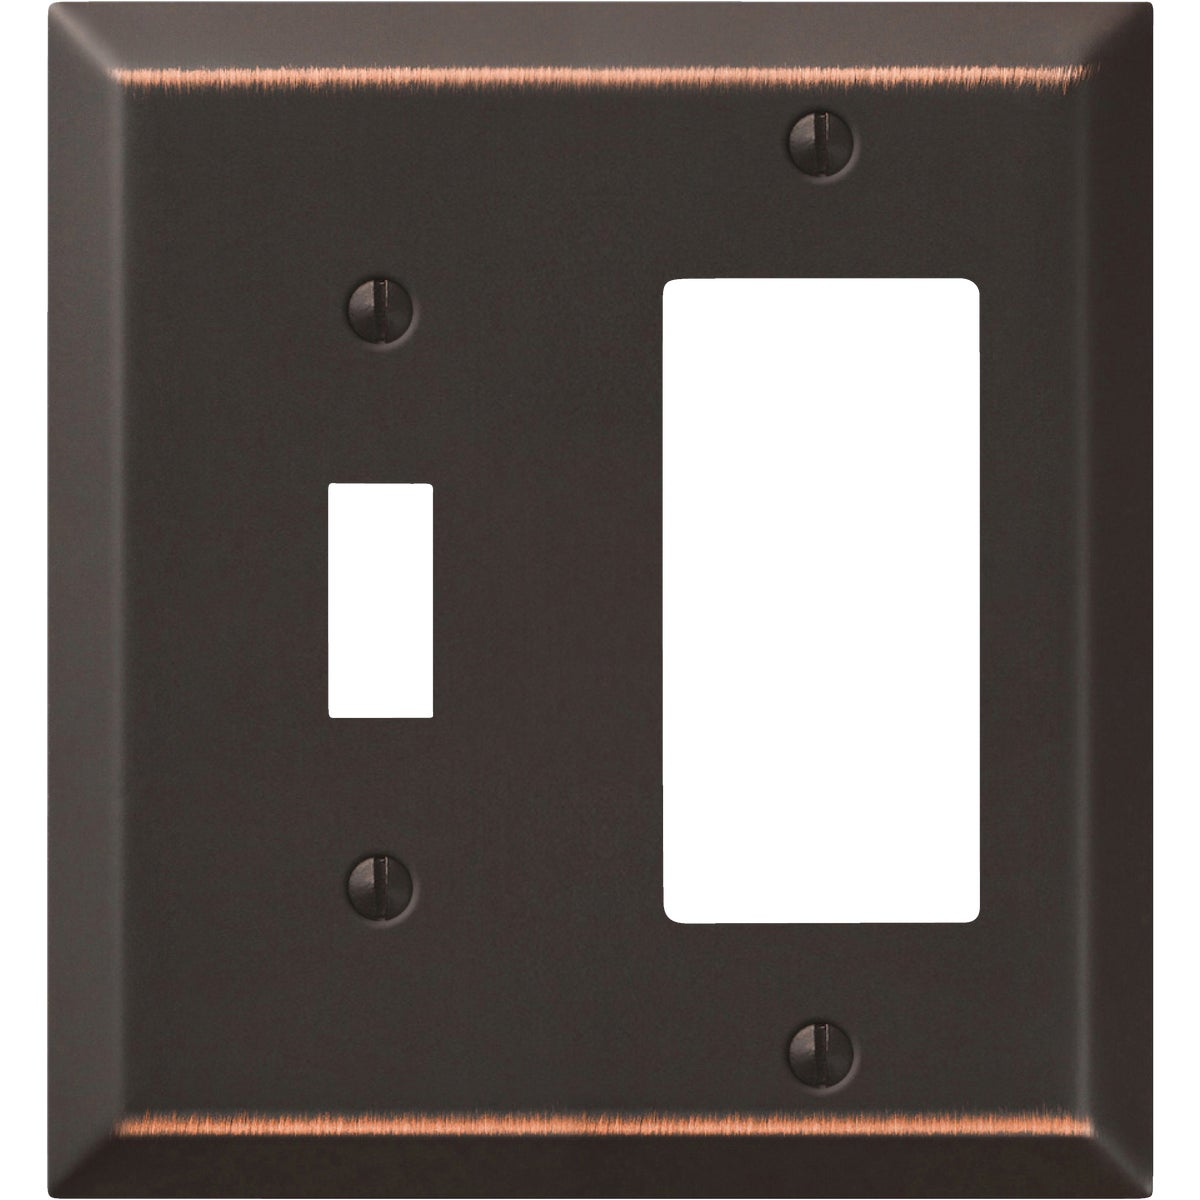 1TGL/1RKR ABRZ WALLPLATE - 9AZ126 by Jackson Deerfield Mf